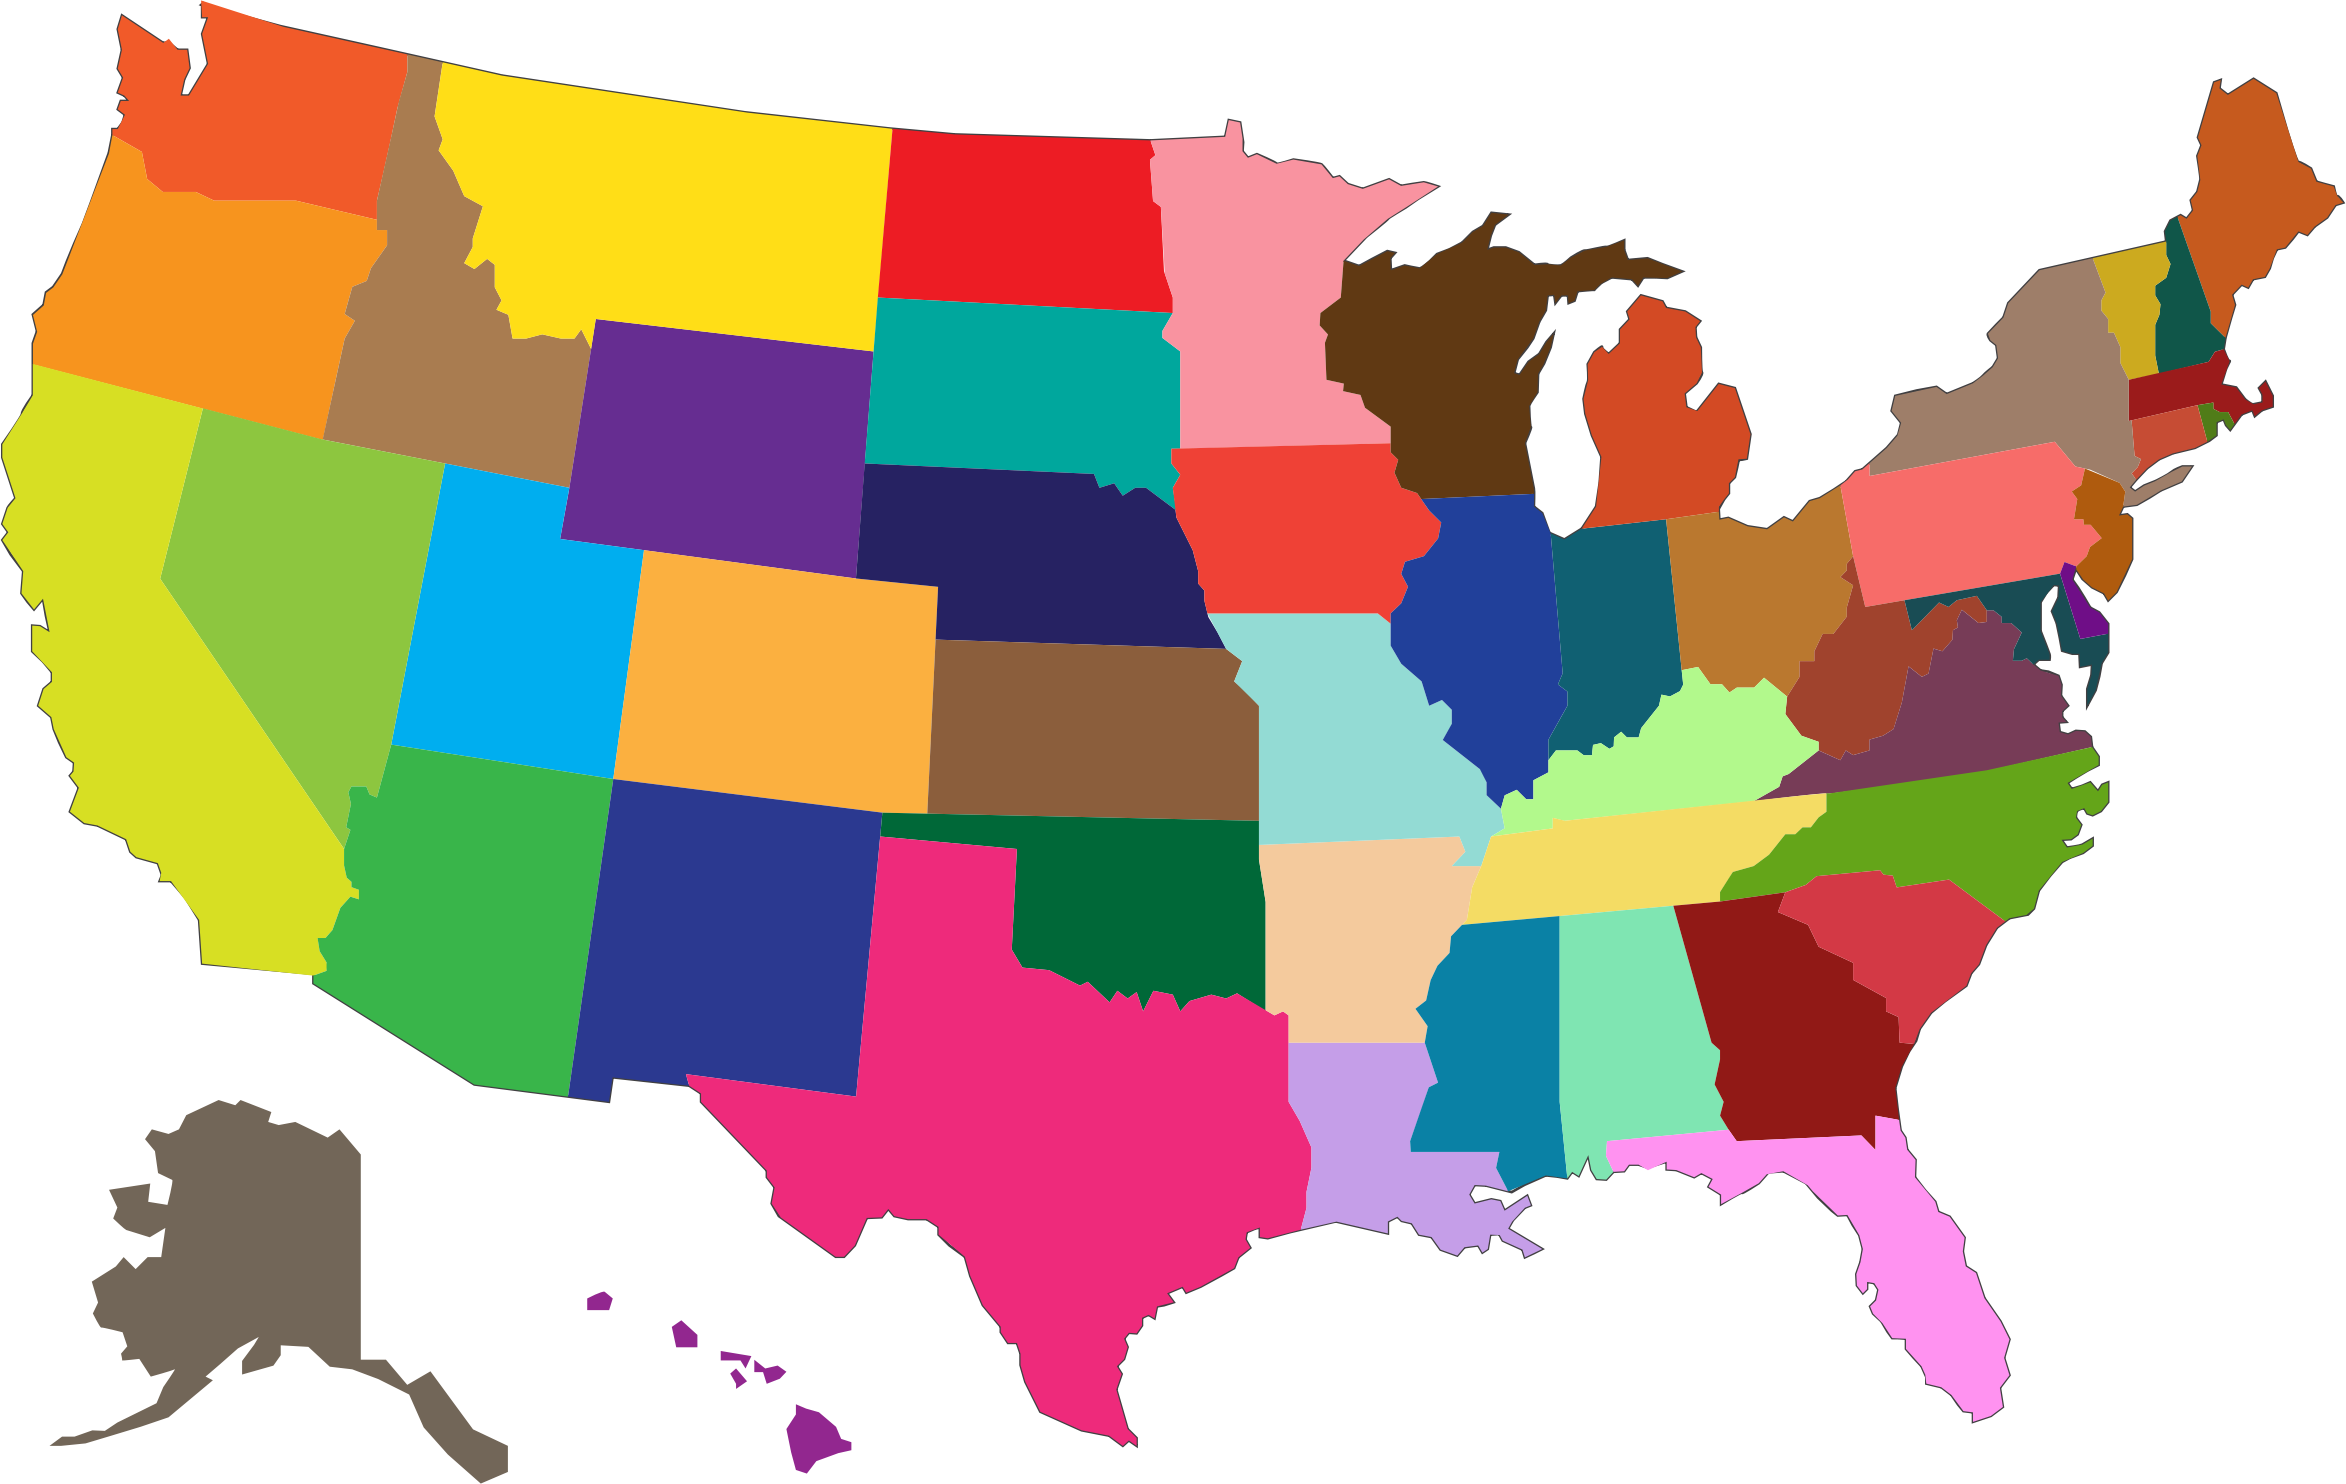 Clipart MultiColored United States Map - A united states map